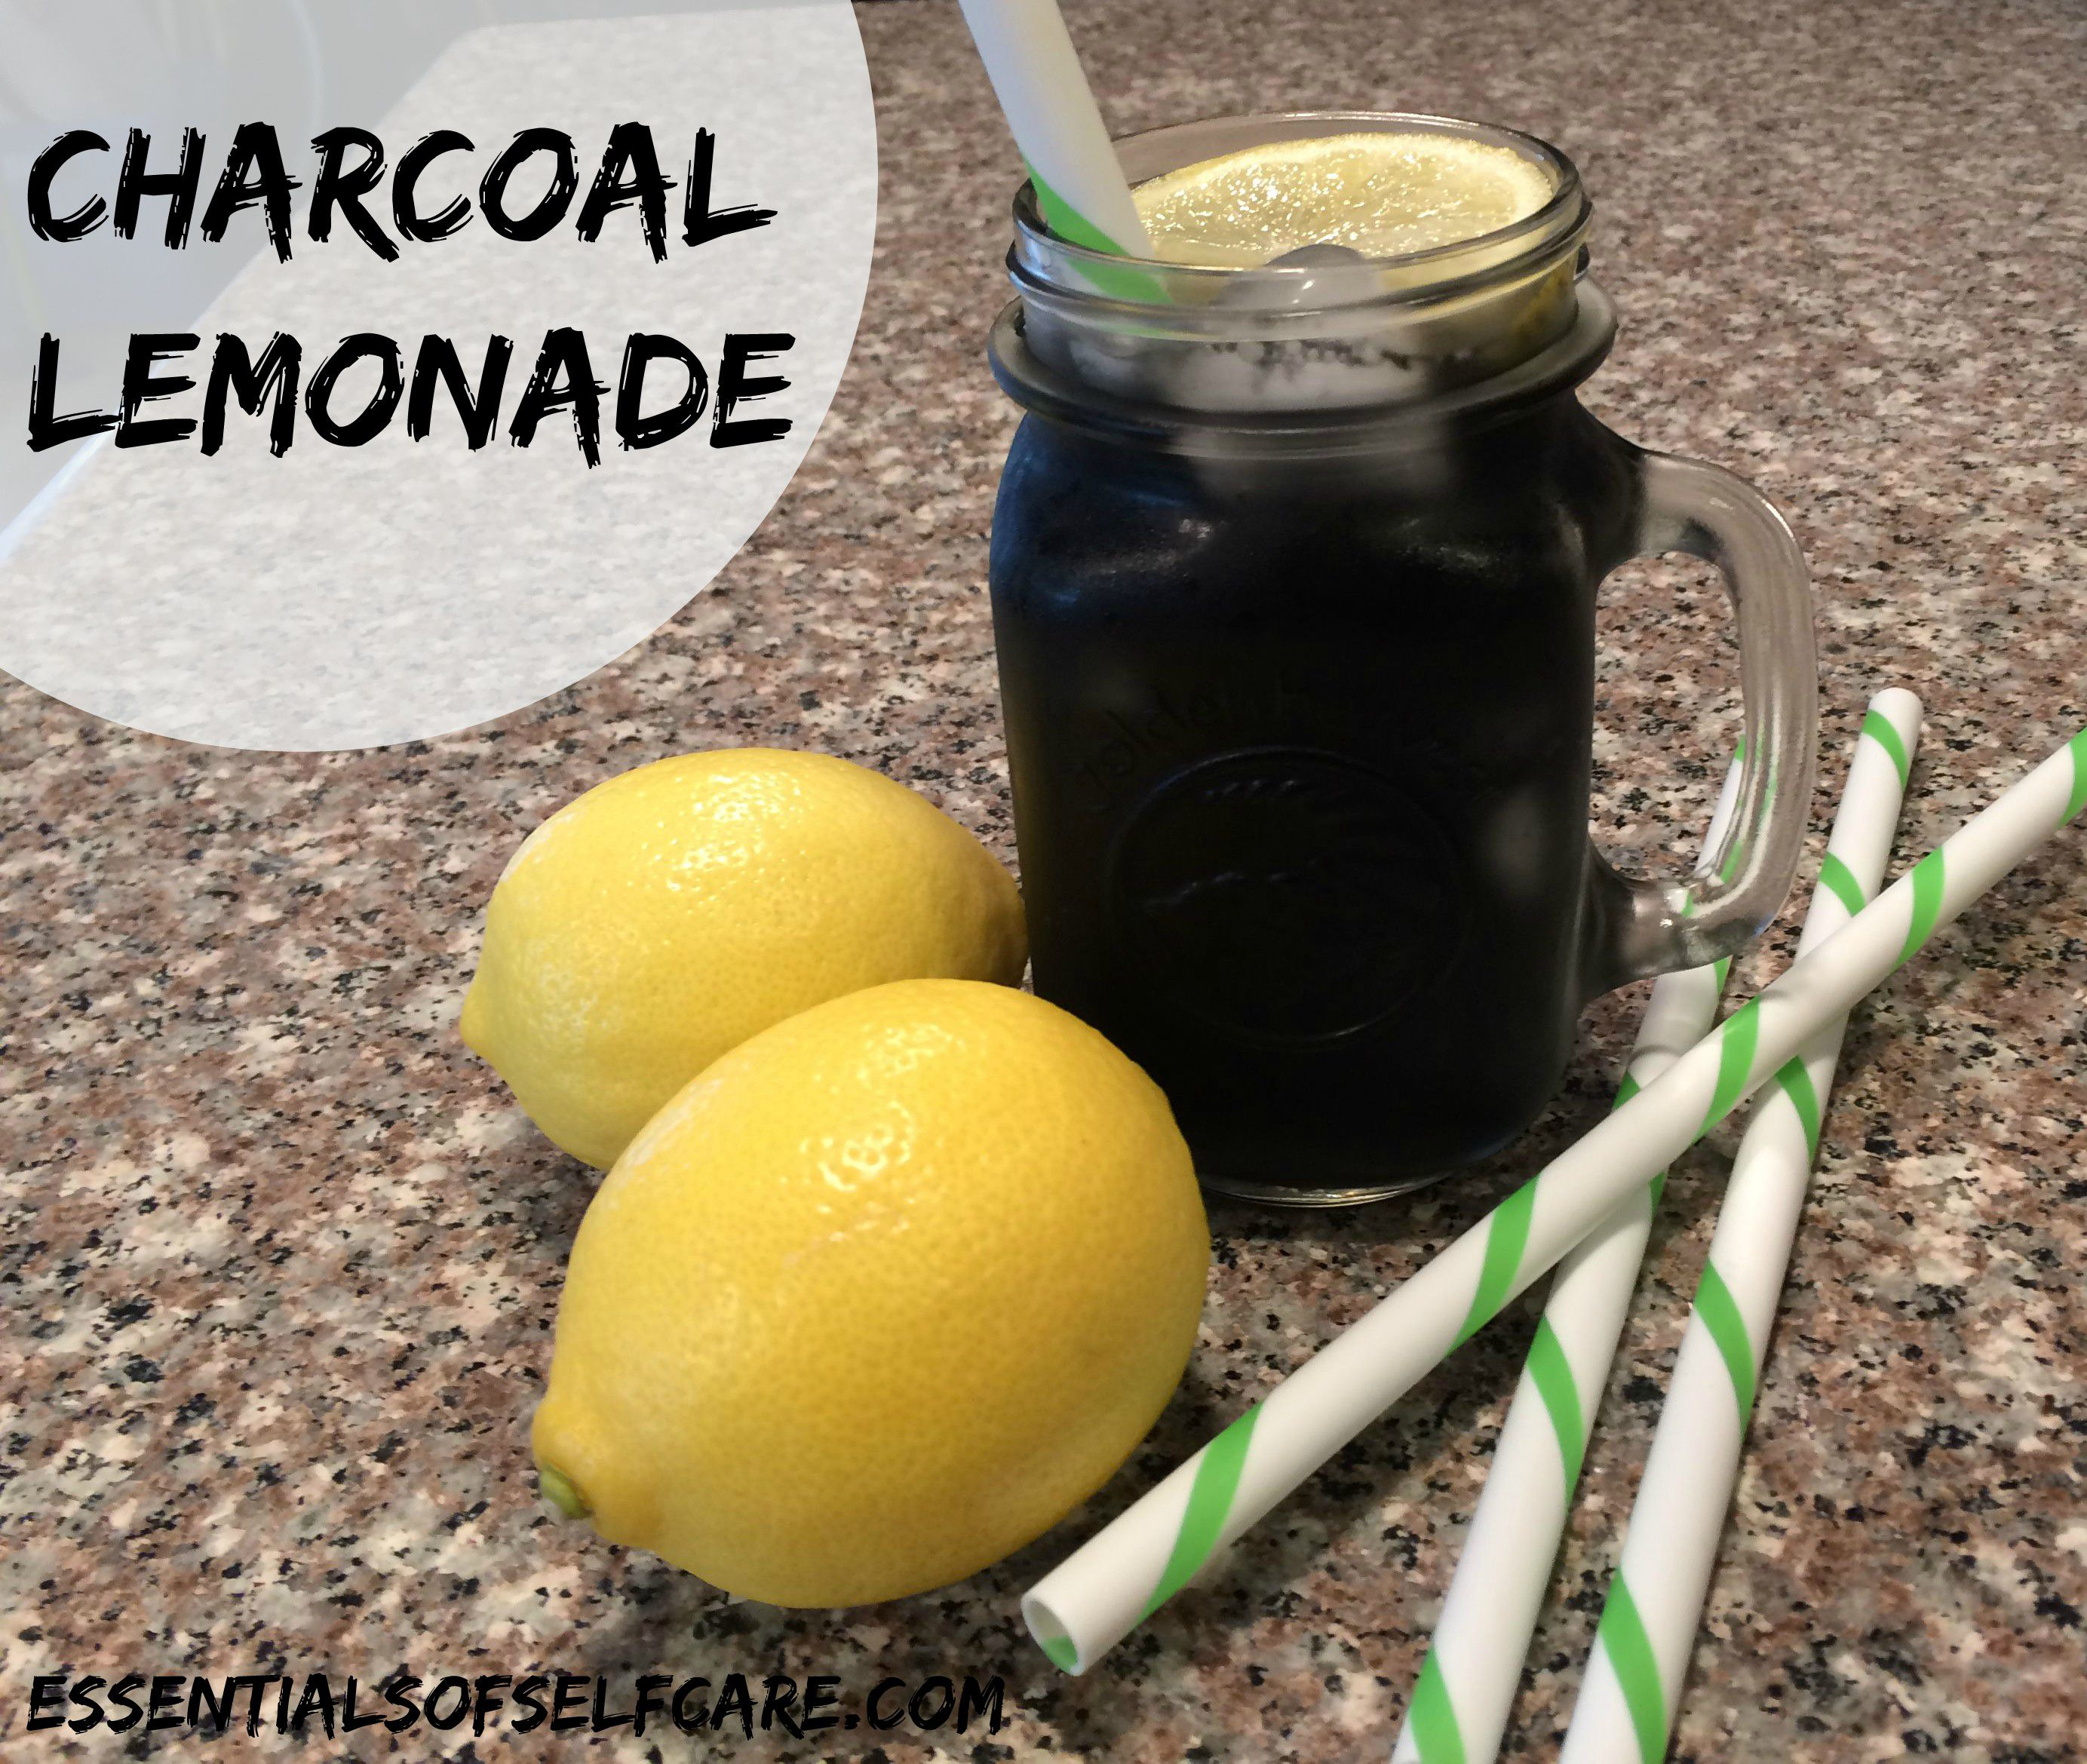 Feeling Toxic? Clean Your Insides With Black Lemonade